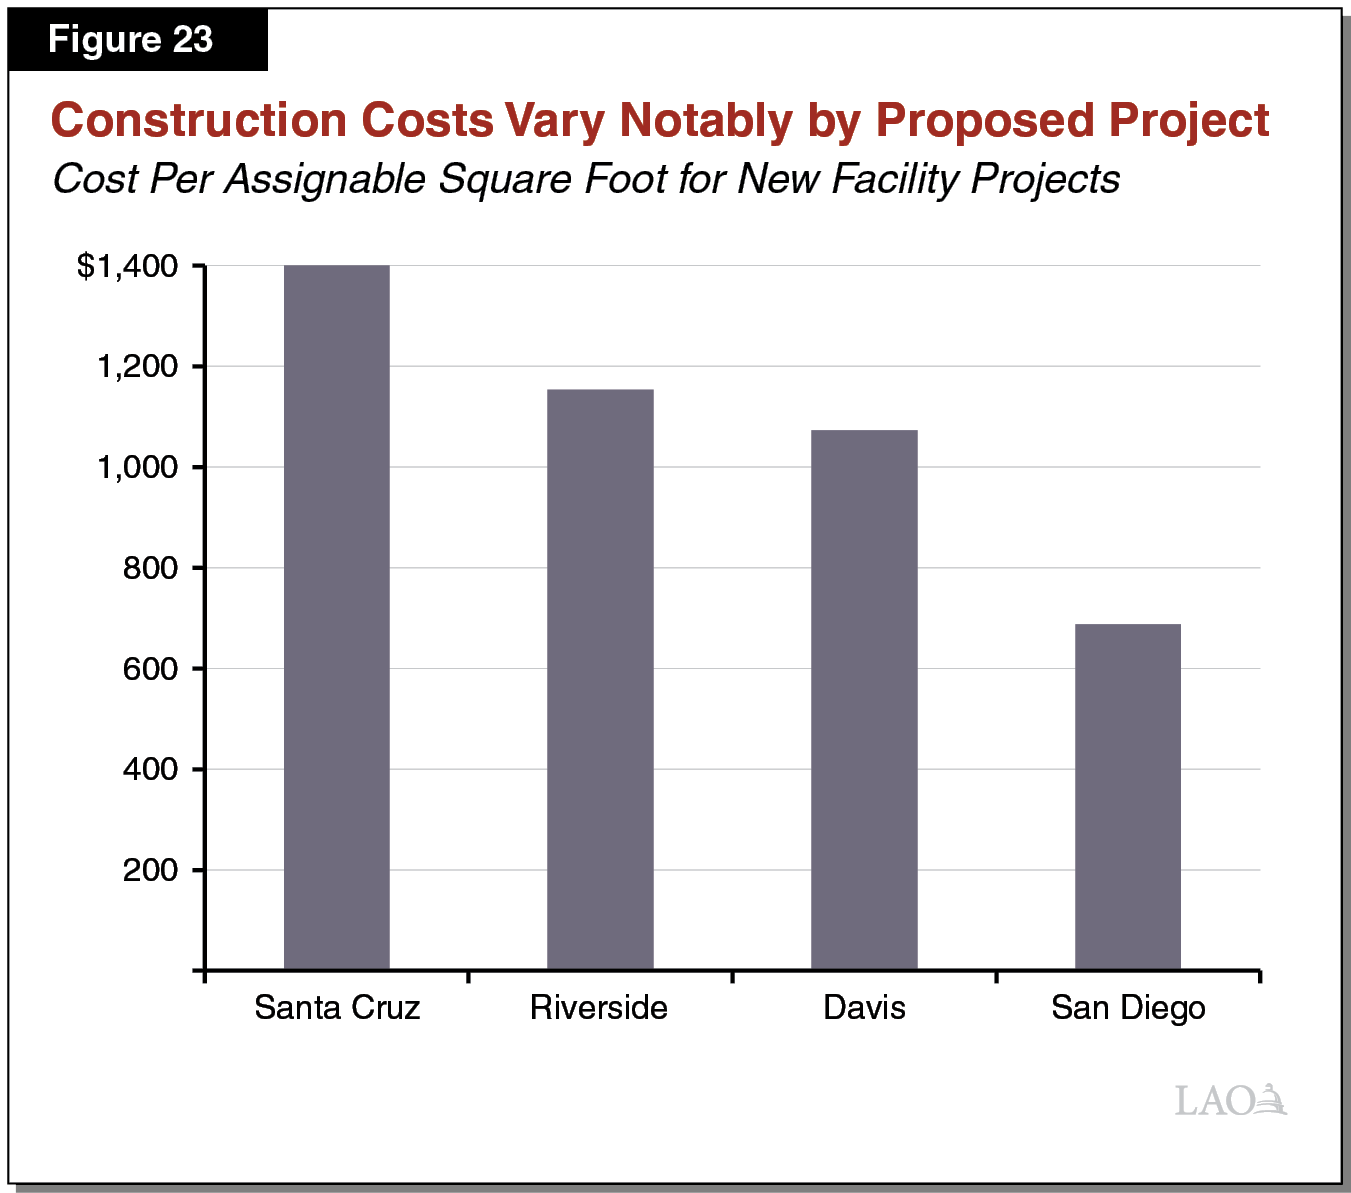 Figure 23 - Construction Costs Vary Notably by Proposed Project